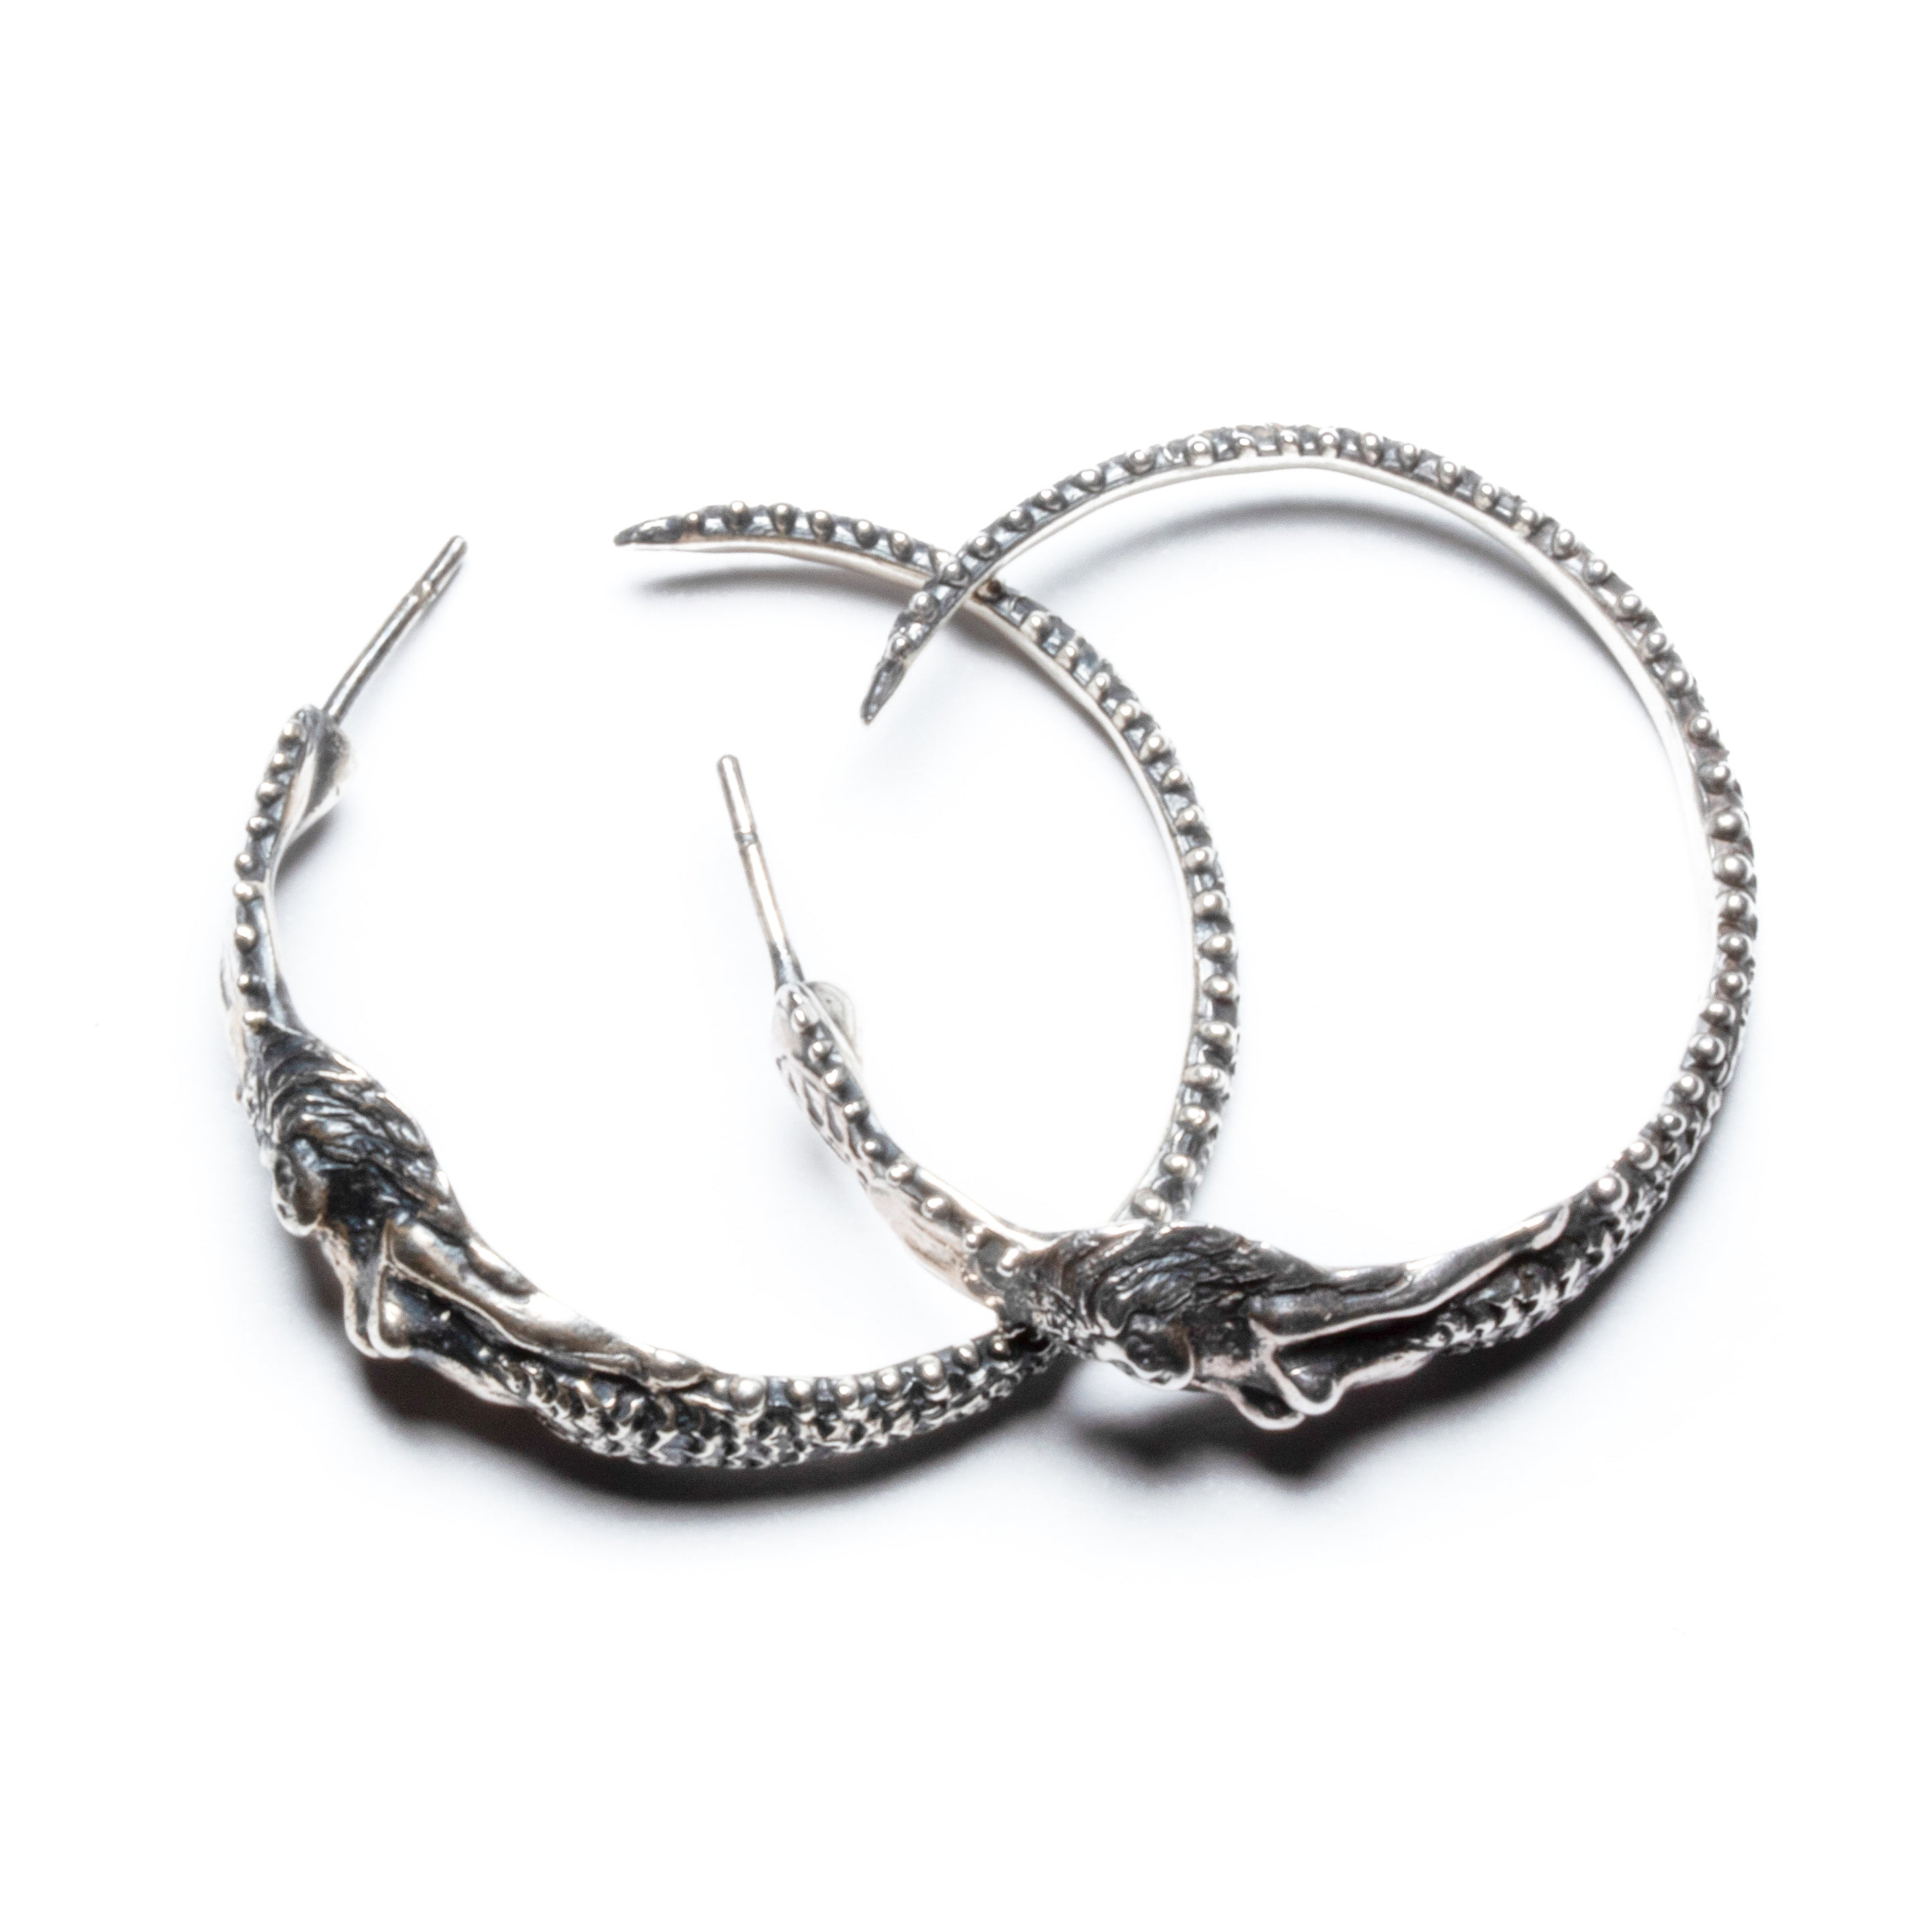 Angitia hoop earrings ~ (blackened silver)